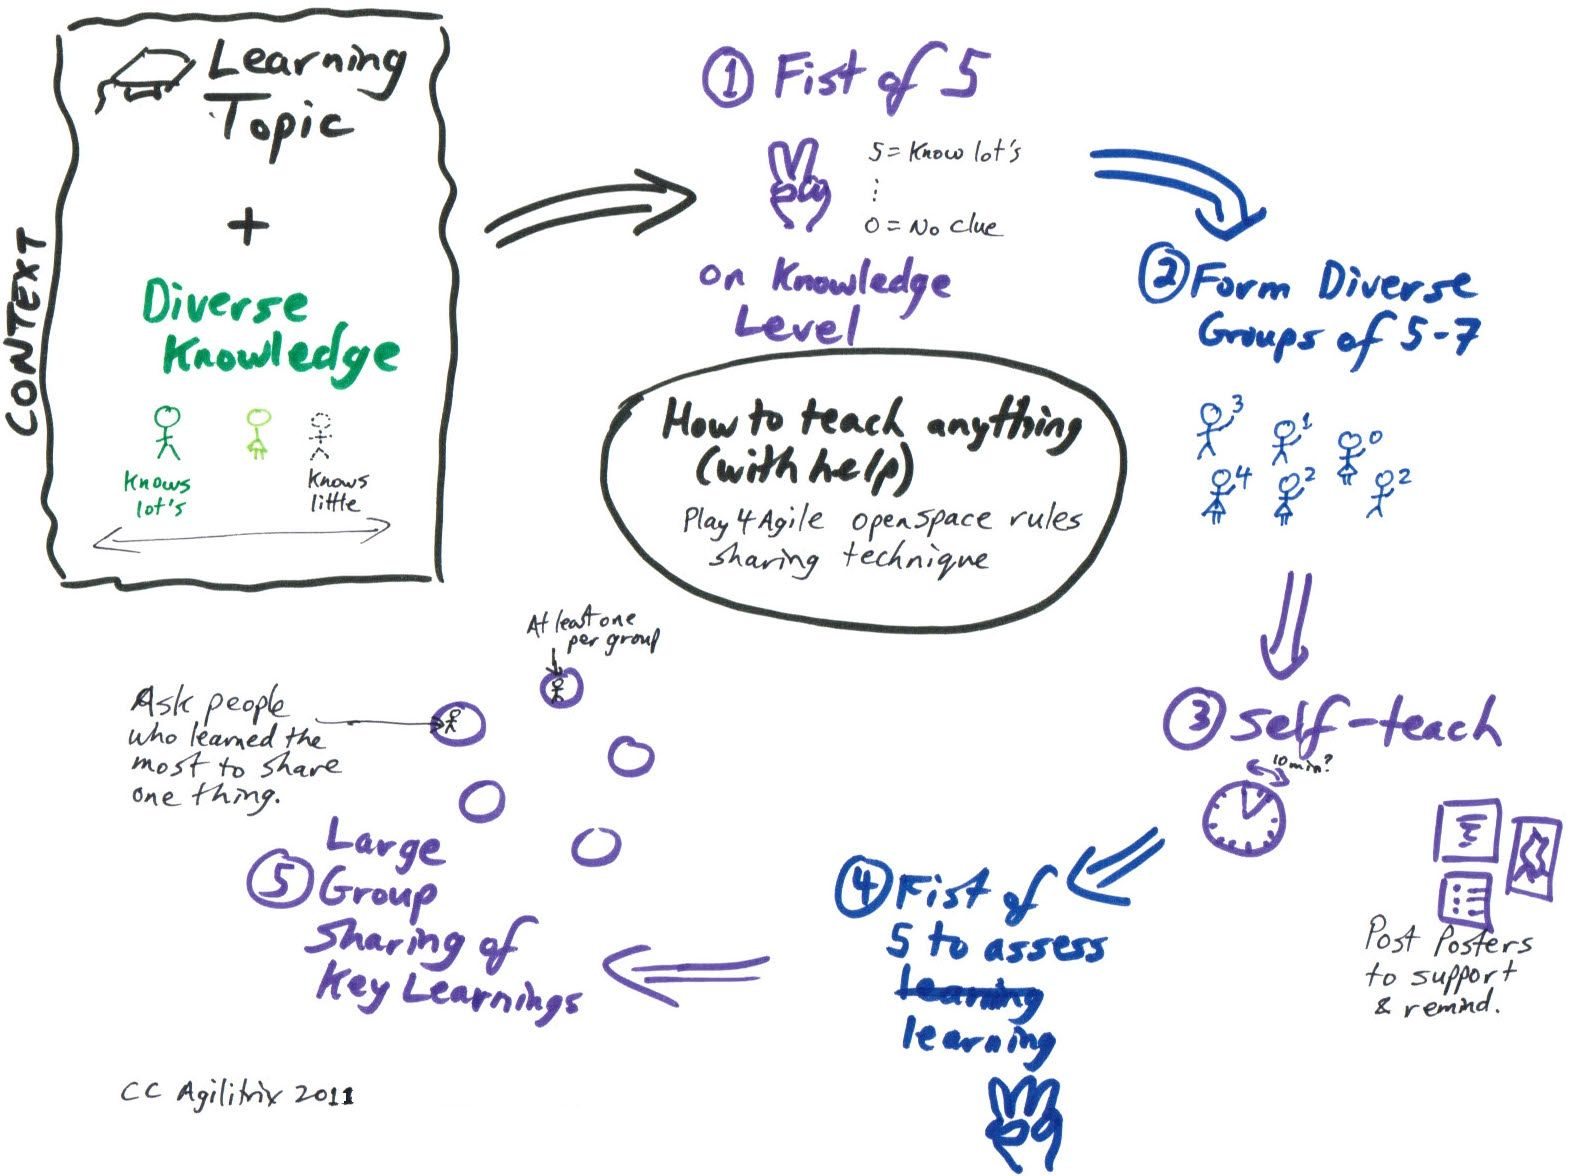 How To Teach Anything Open Space Rules